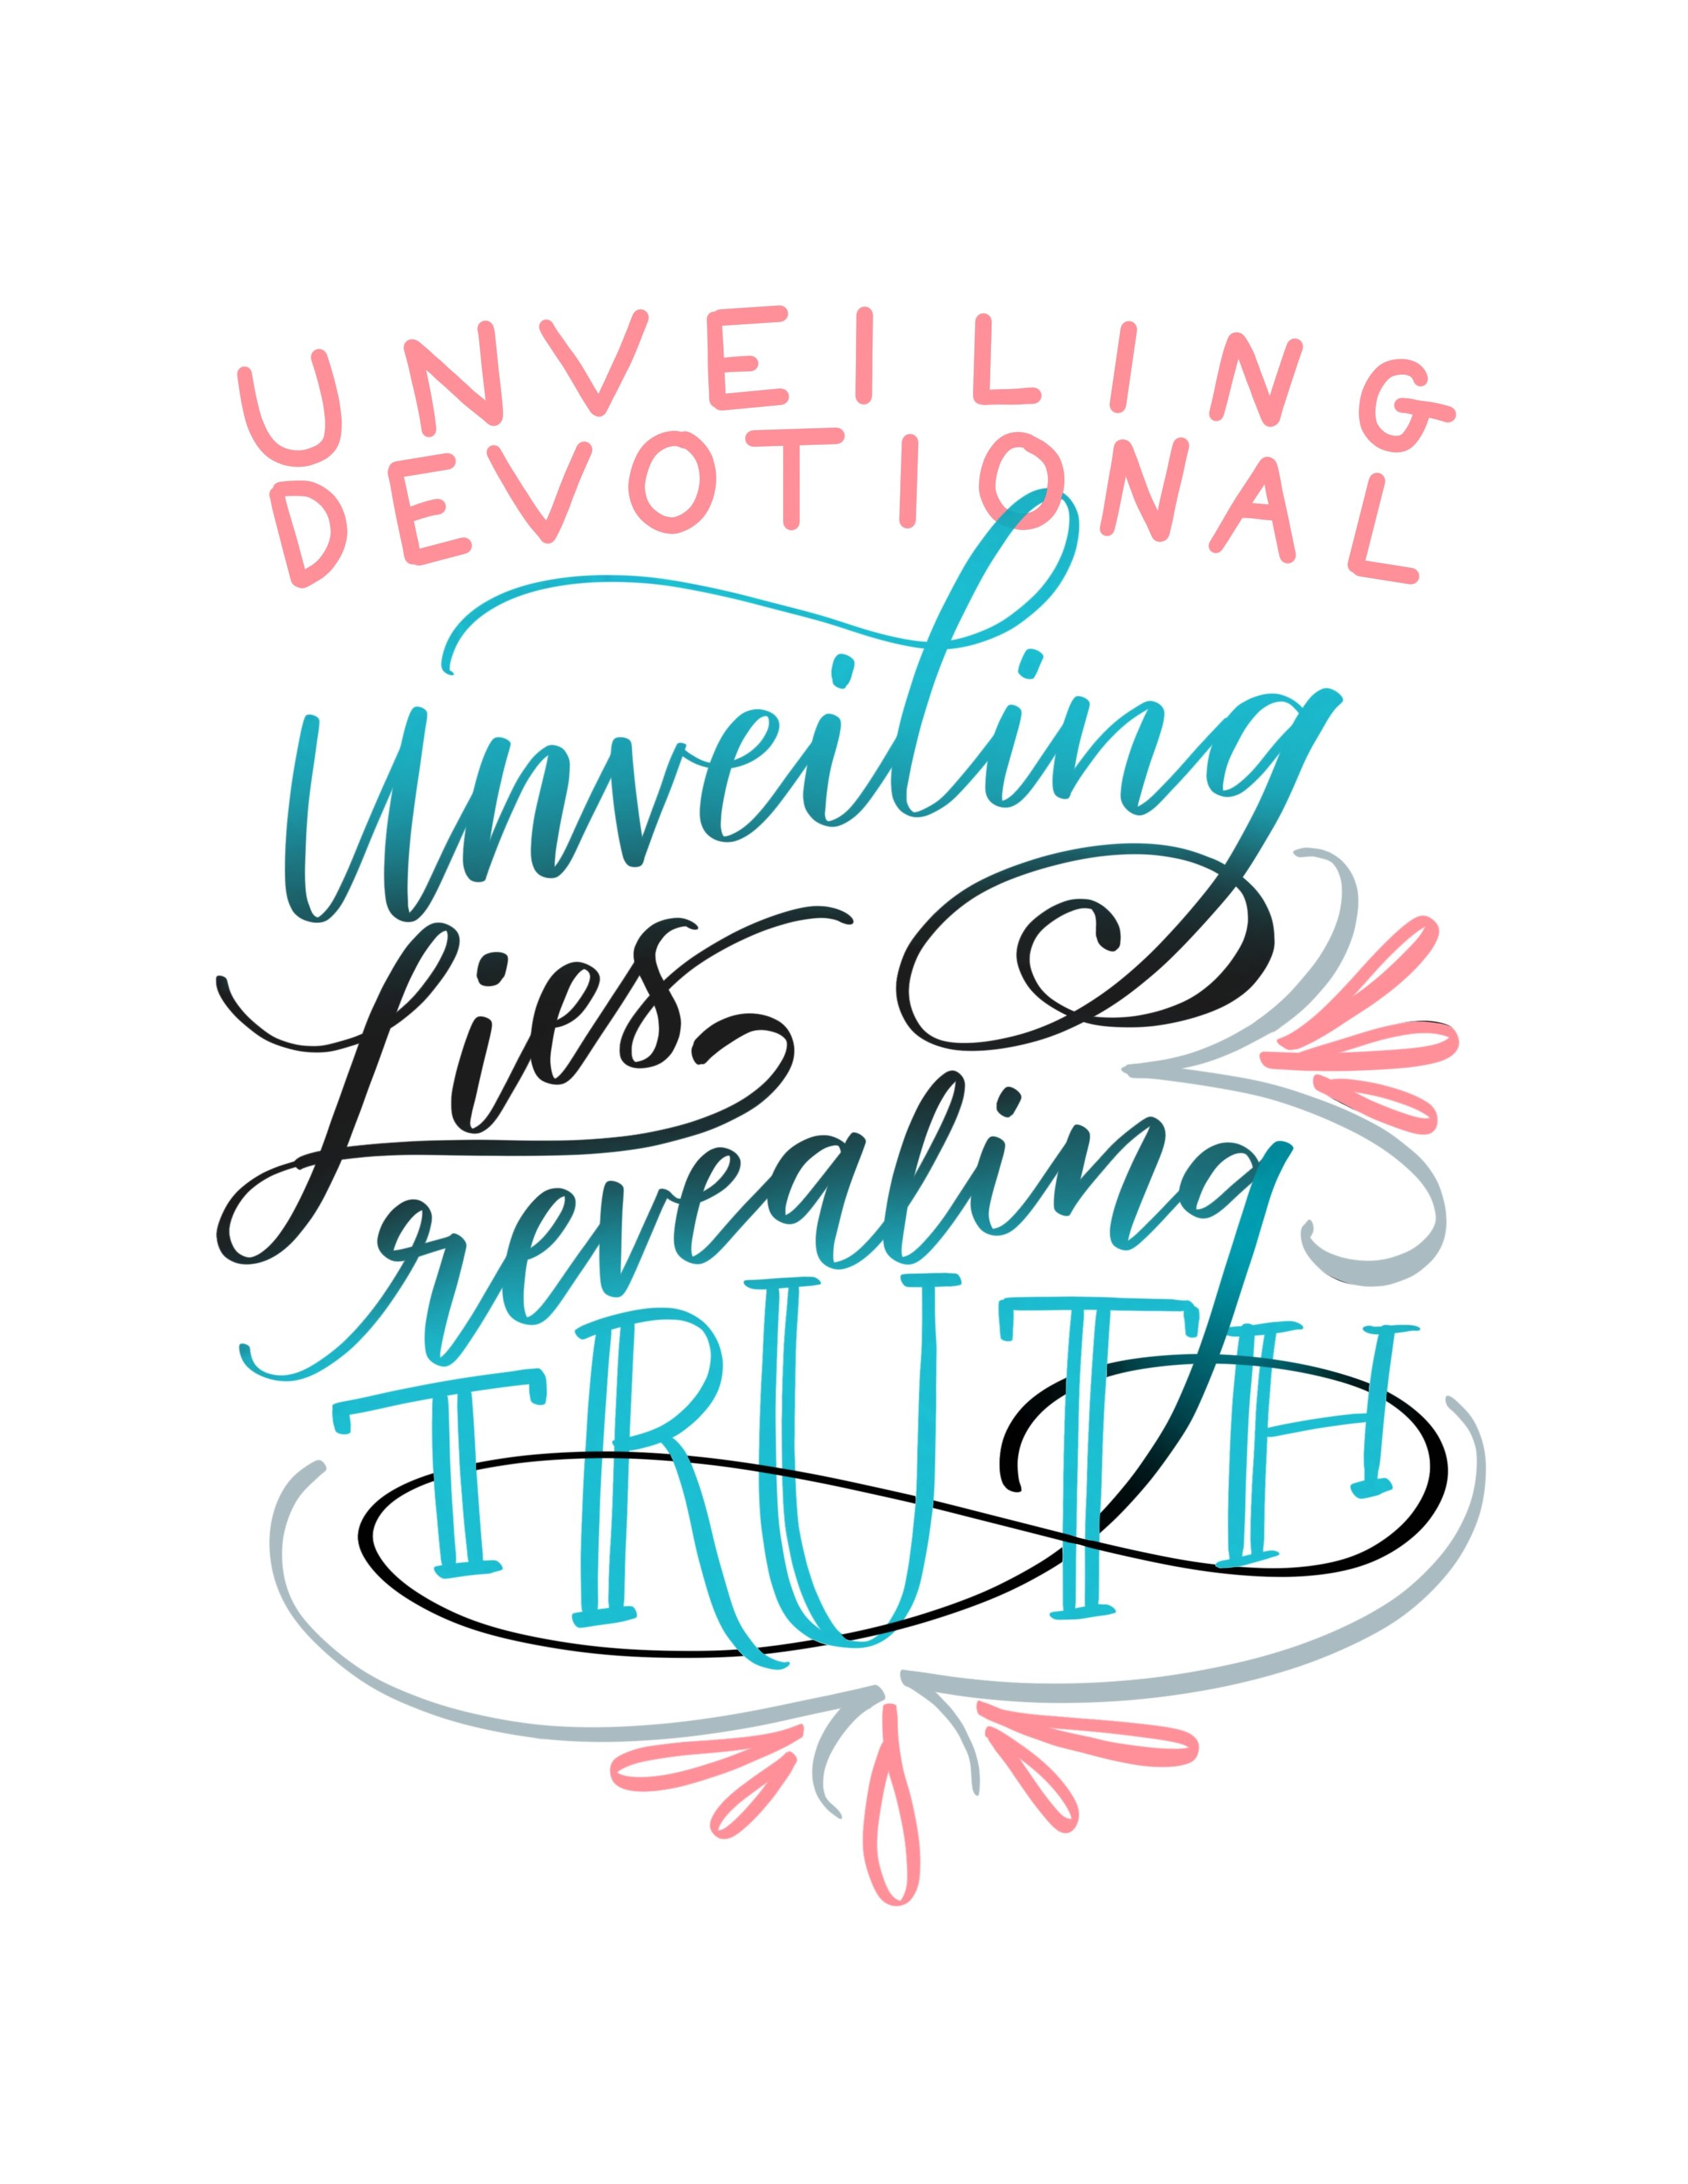 Unveiling_Devotional.jpg